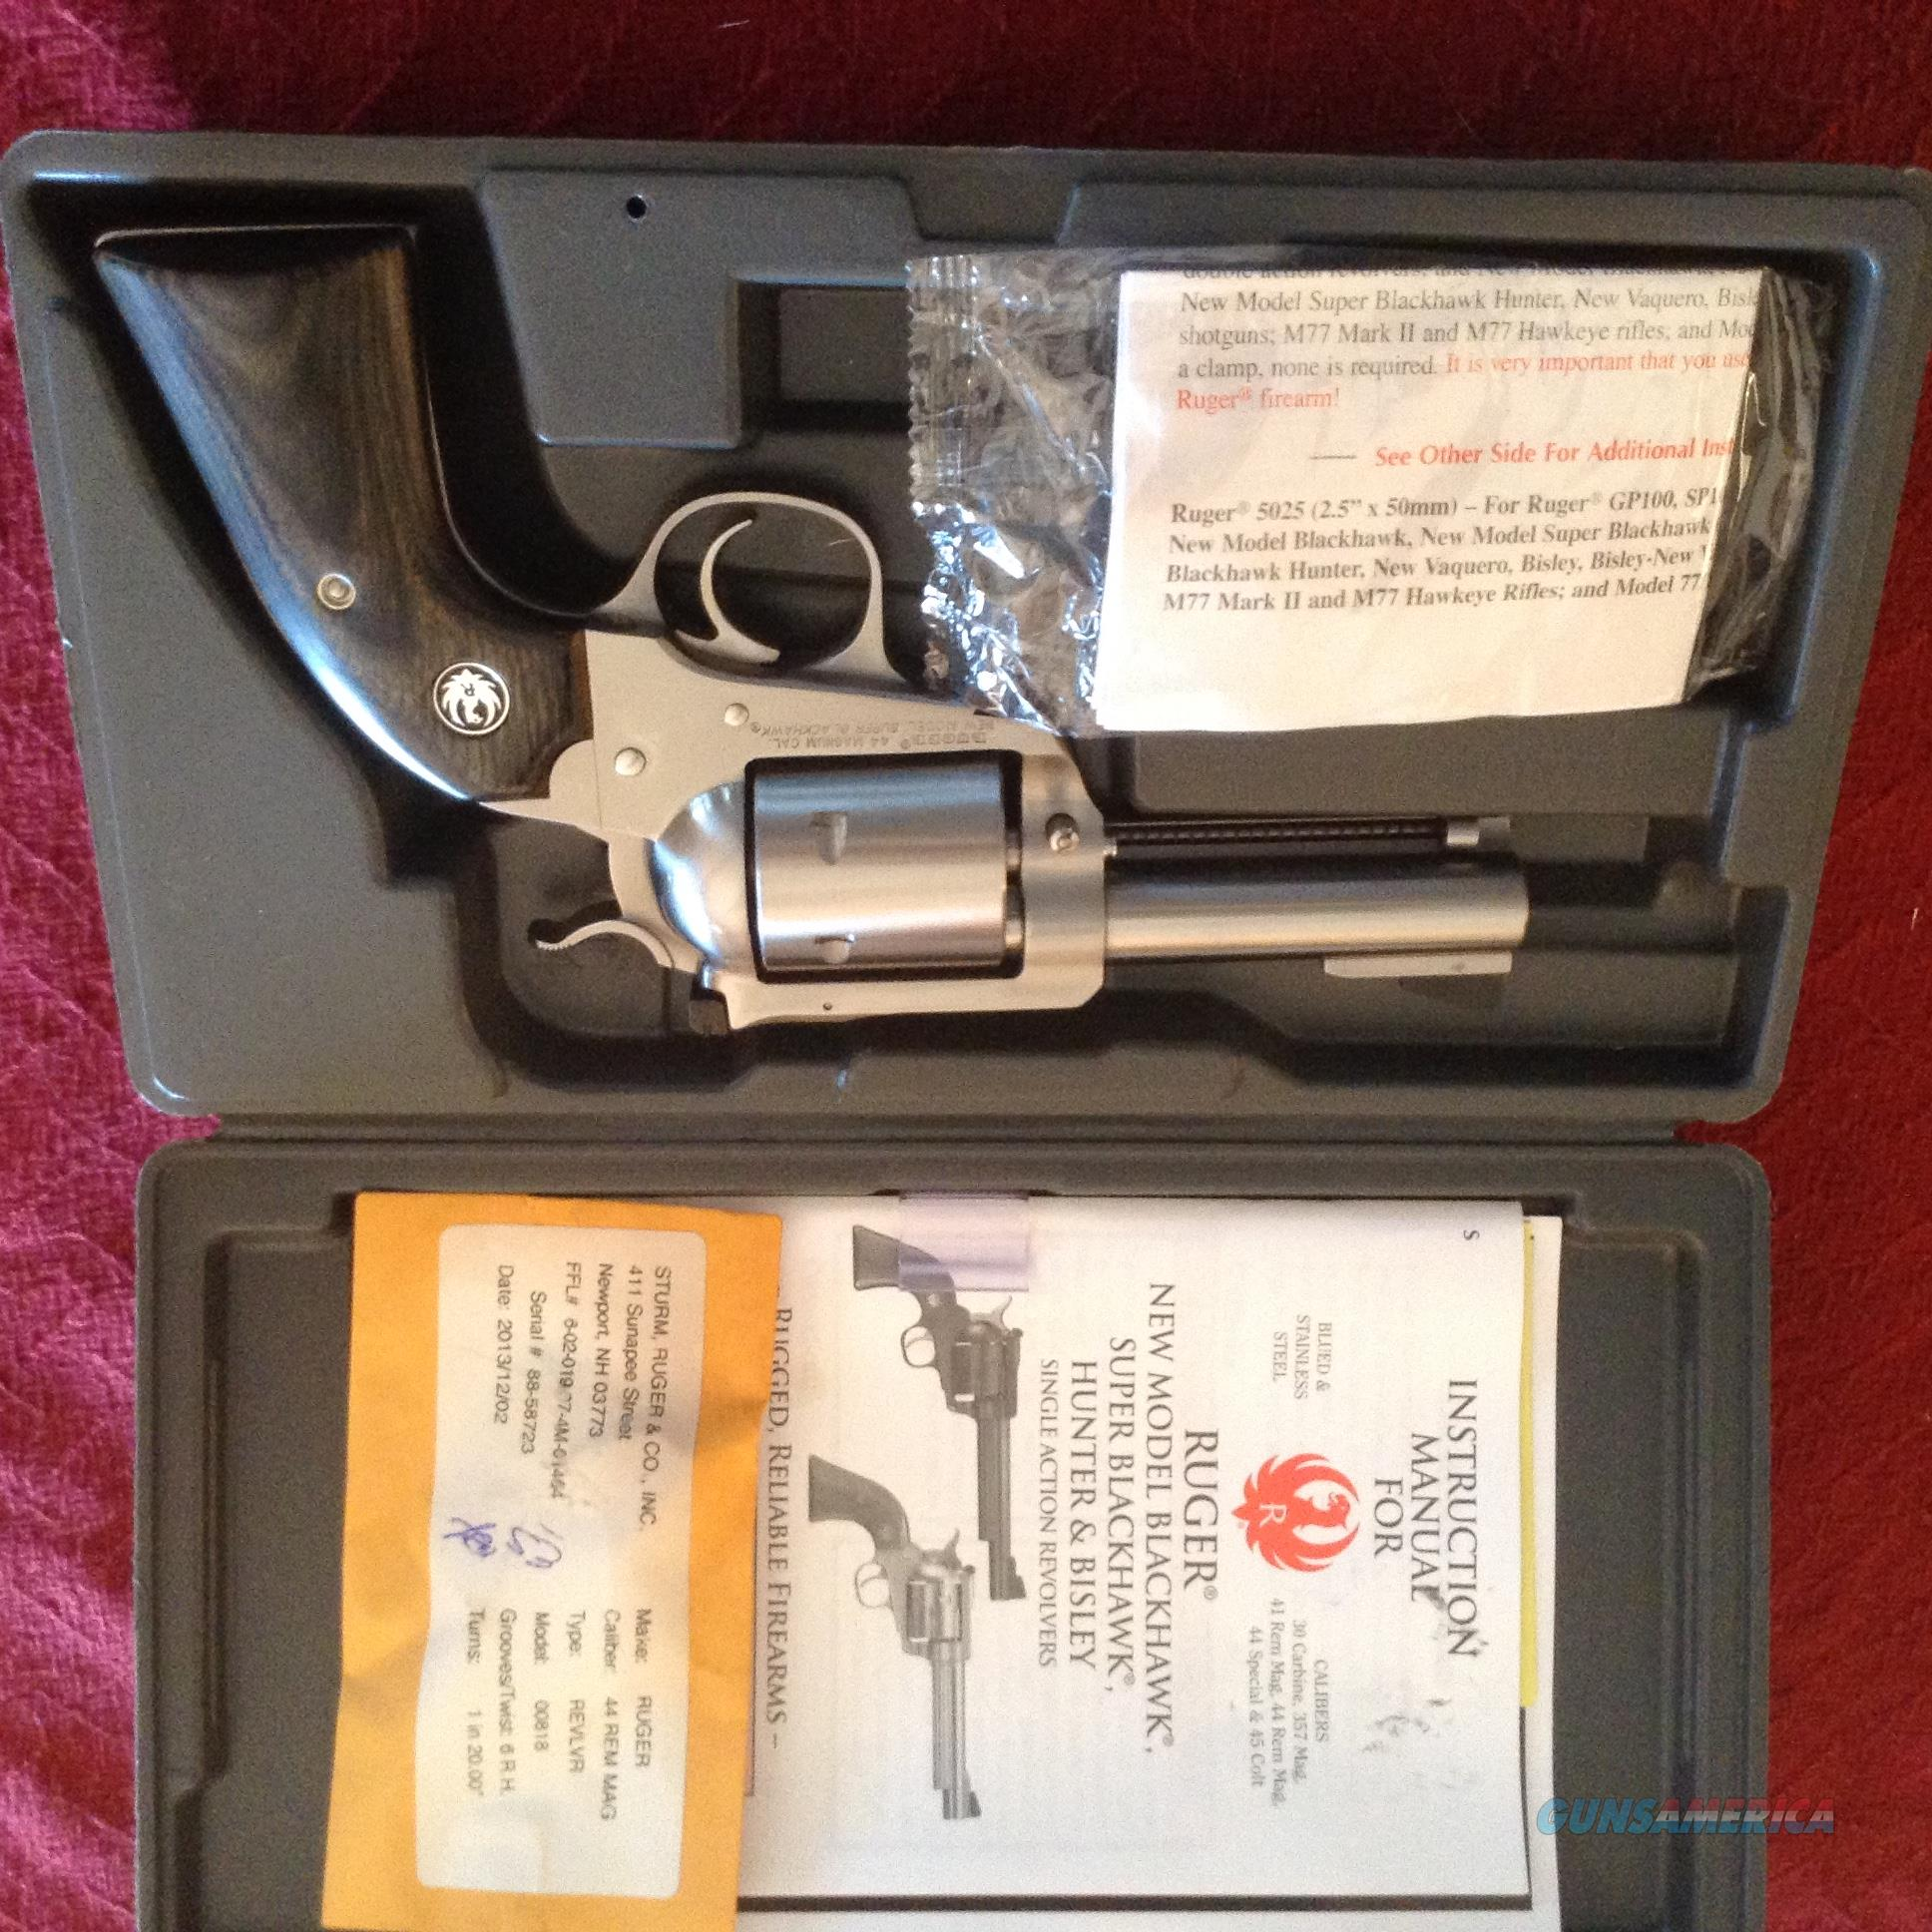 Ruger New Model Blackhawk Bisley 44 Mag  Guns > Pistols > Ruger Single Action Revolvers > Blackhawk Type